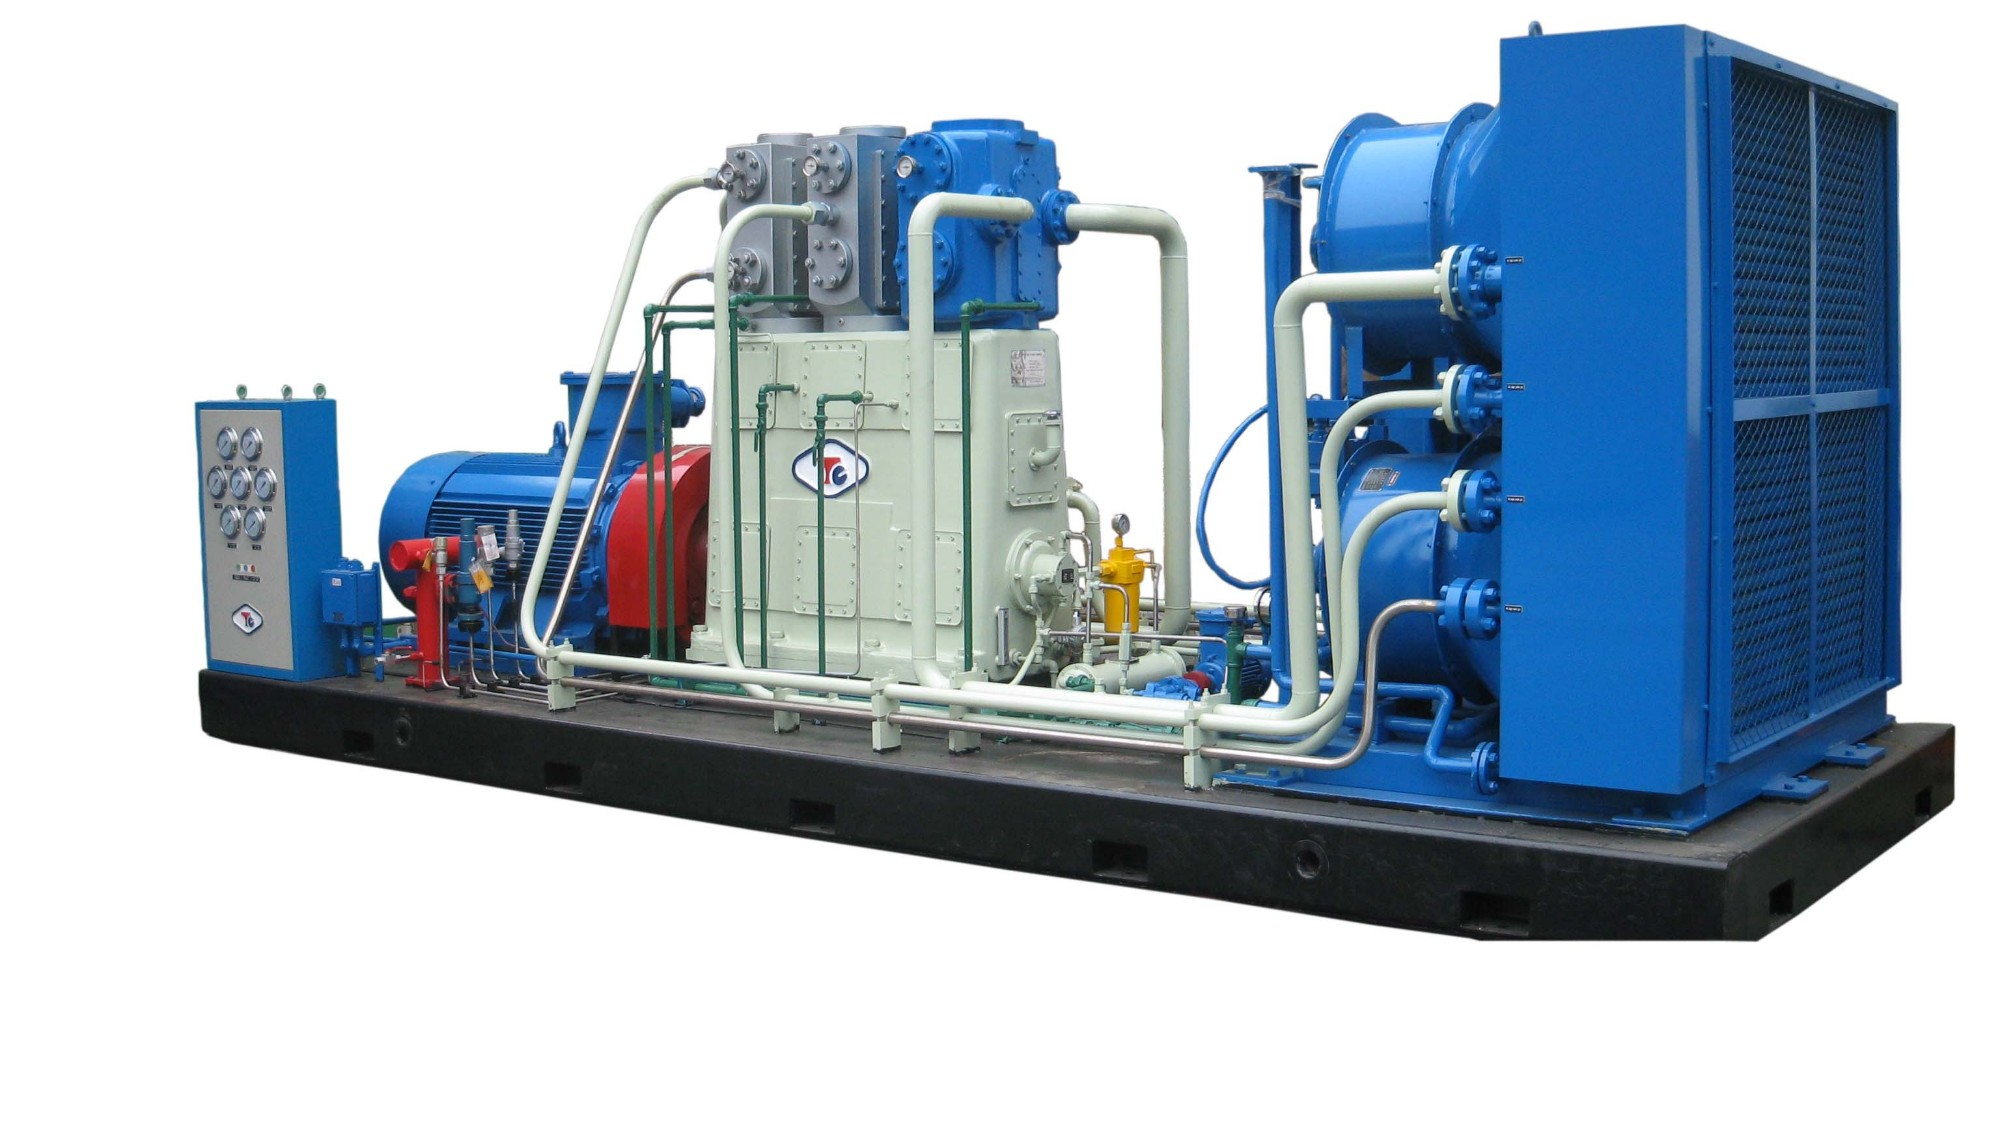 600-14700NM3/H Gas Compressor Manufacturers, 600-14700NM3/H Gas Compressor Factory, Supply 600-14700NM3/H Gas Compressor